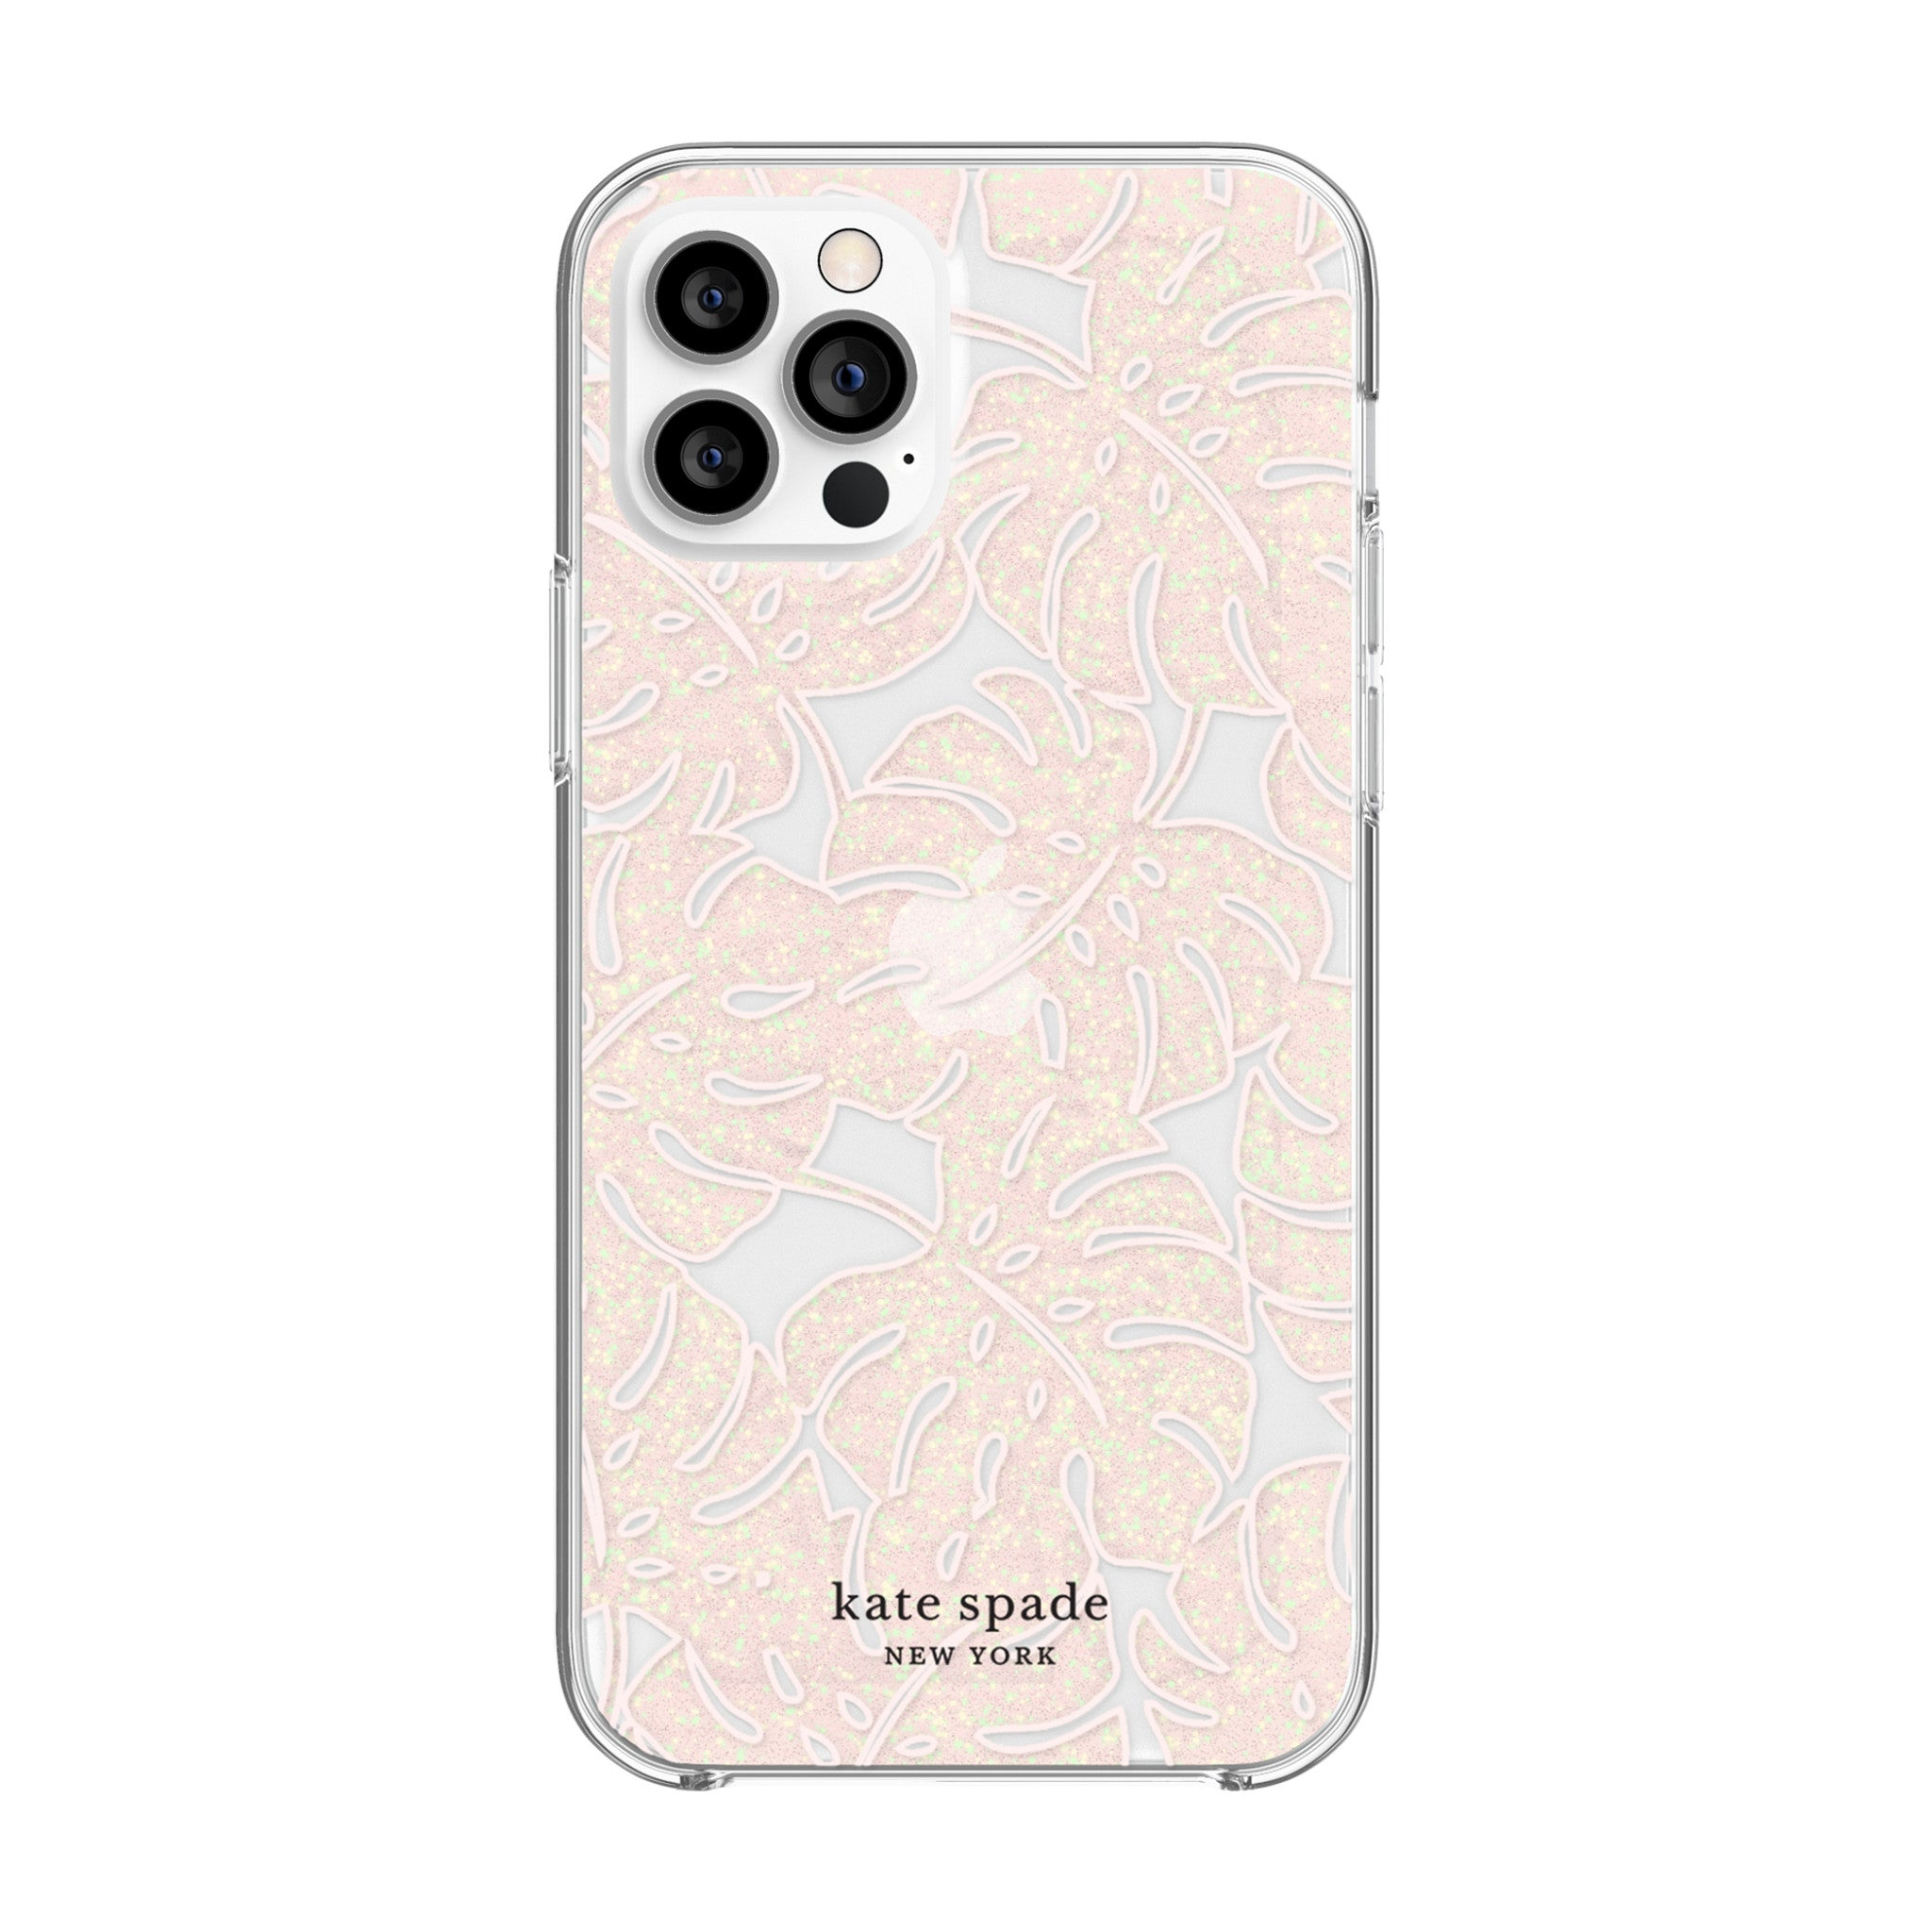 kate spade new york - Protective Hardshell Case for  iPhone 12/12 Pro - Island Leaf Pink Glitter/Clear/Blush Bumper